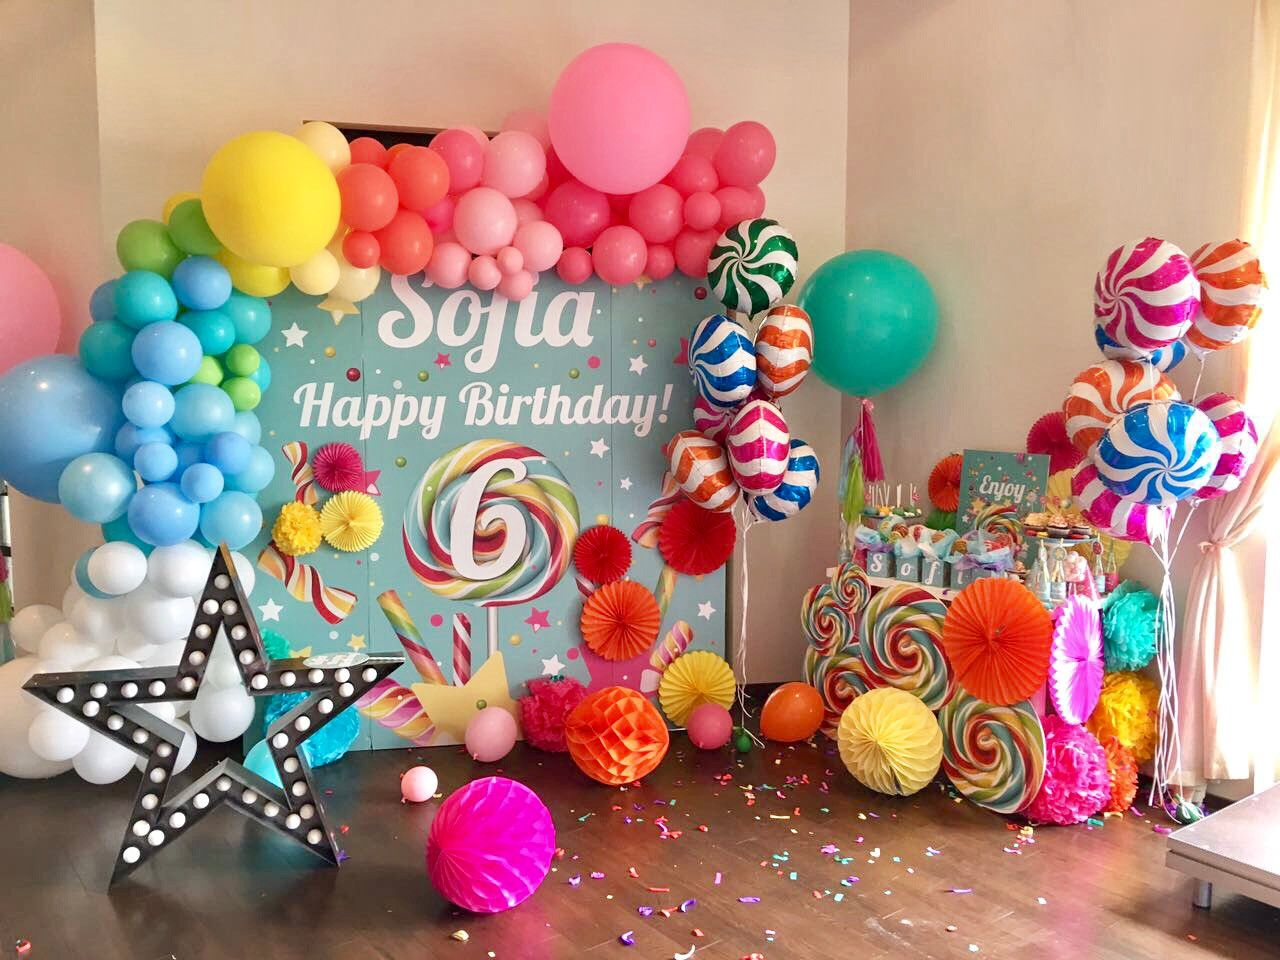 Pin by lynn zhang on kids party Pinterest Candyland Birthdays